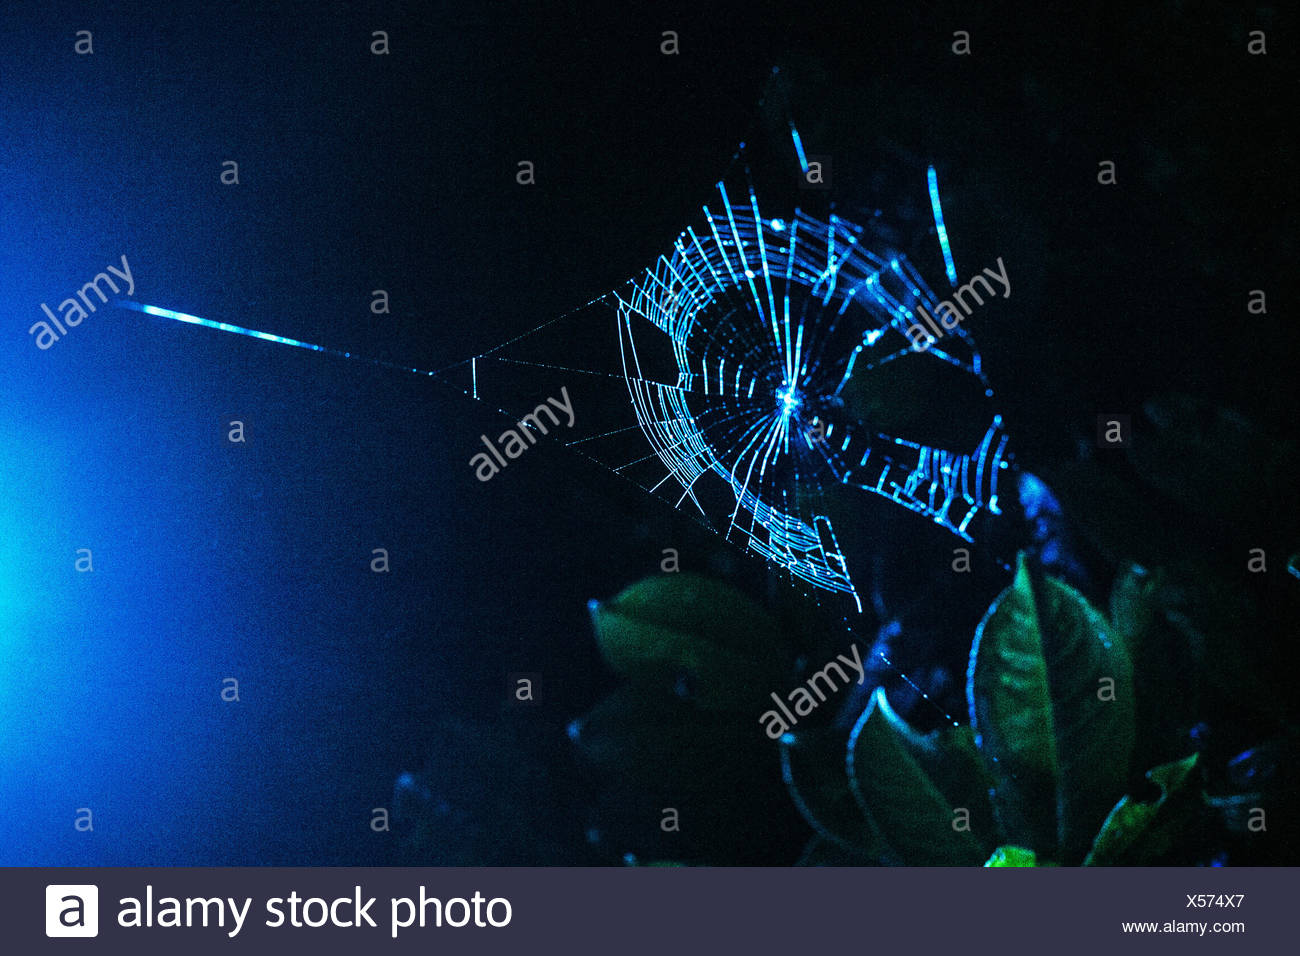 Low Angle View Of Spider Web On Plant At Night - Stock Image